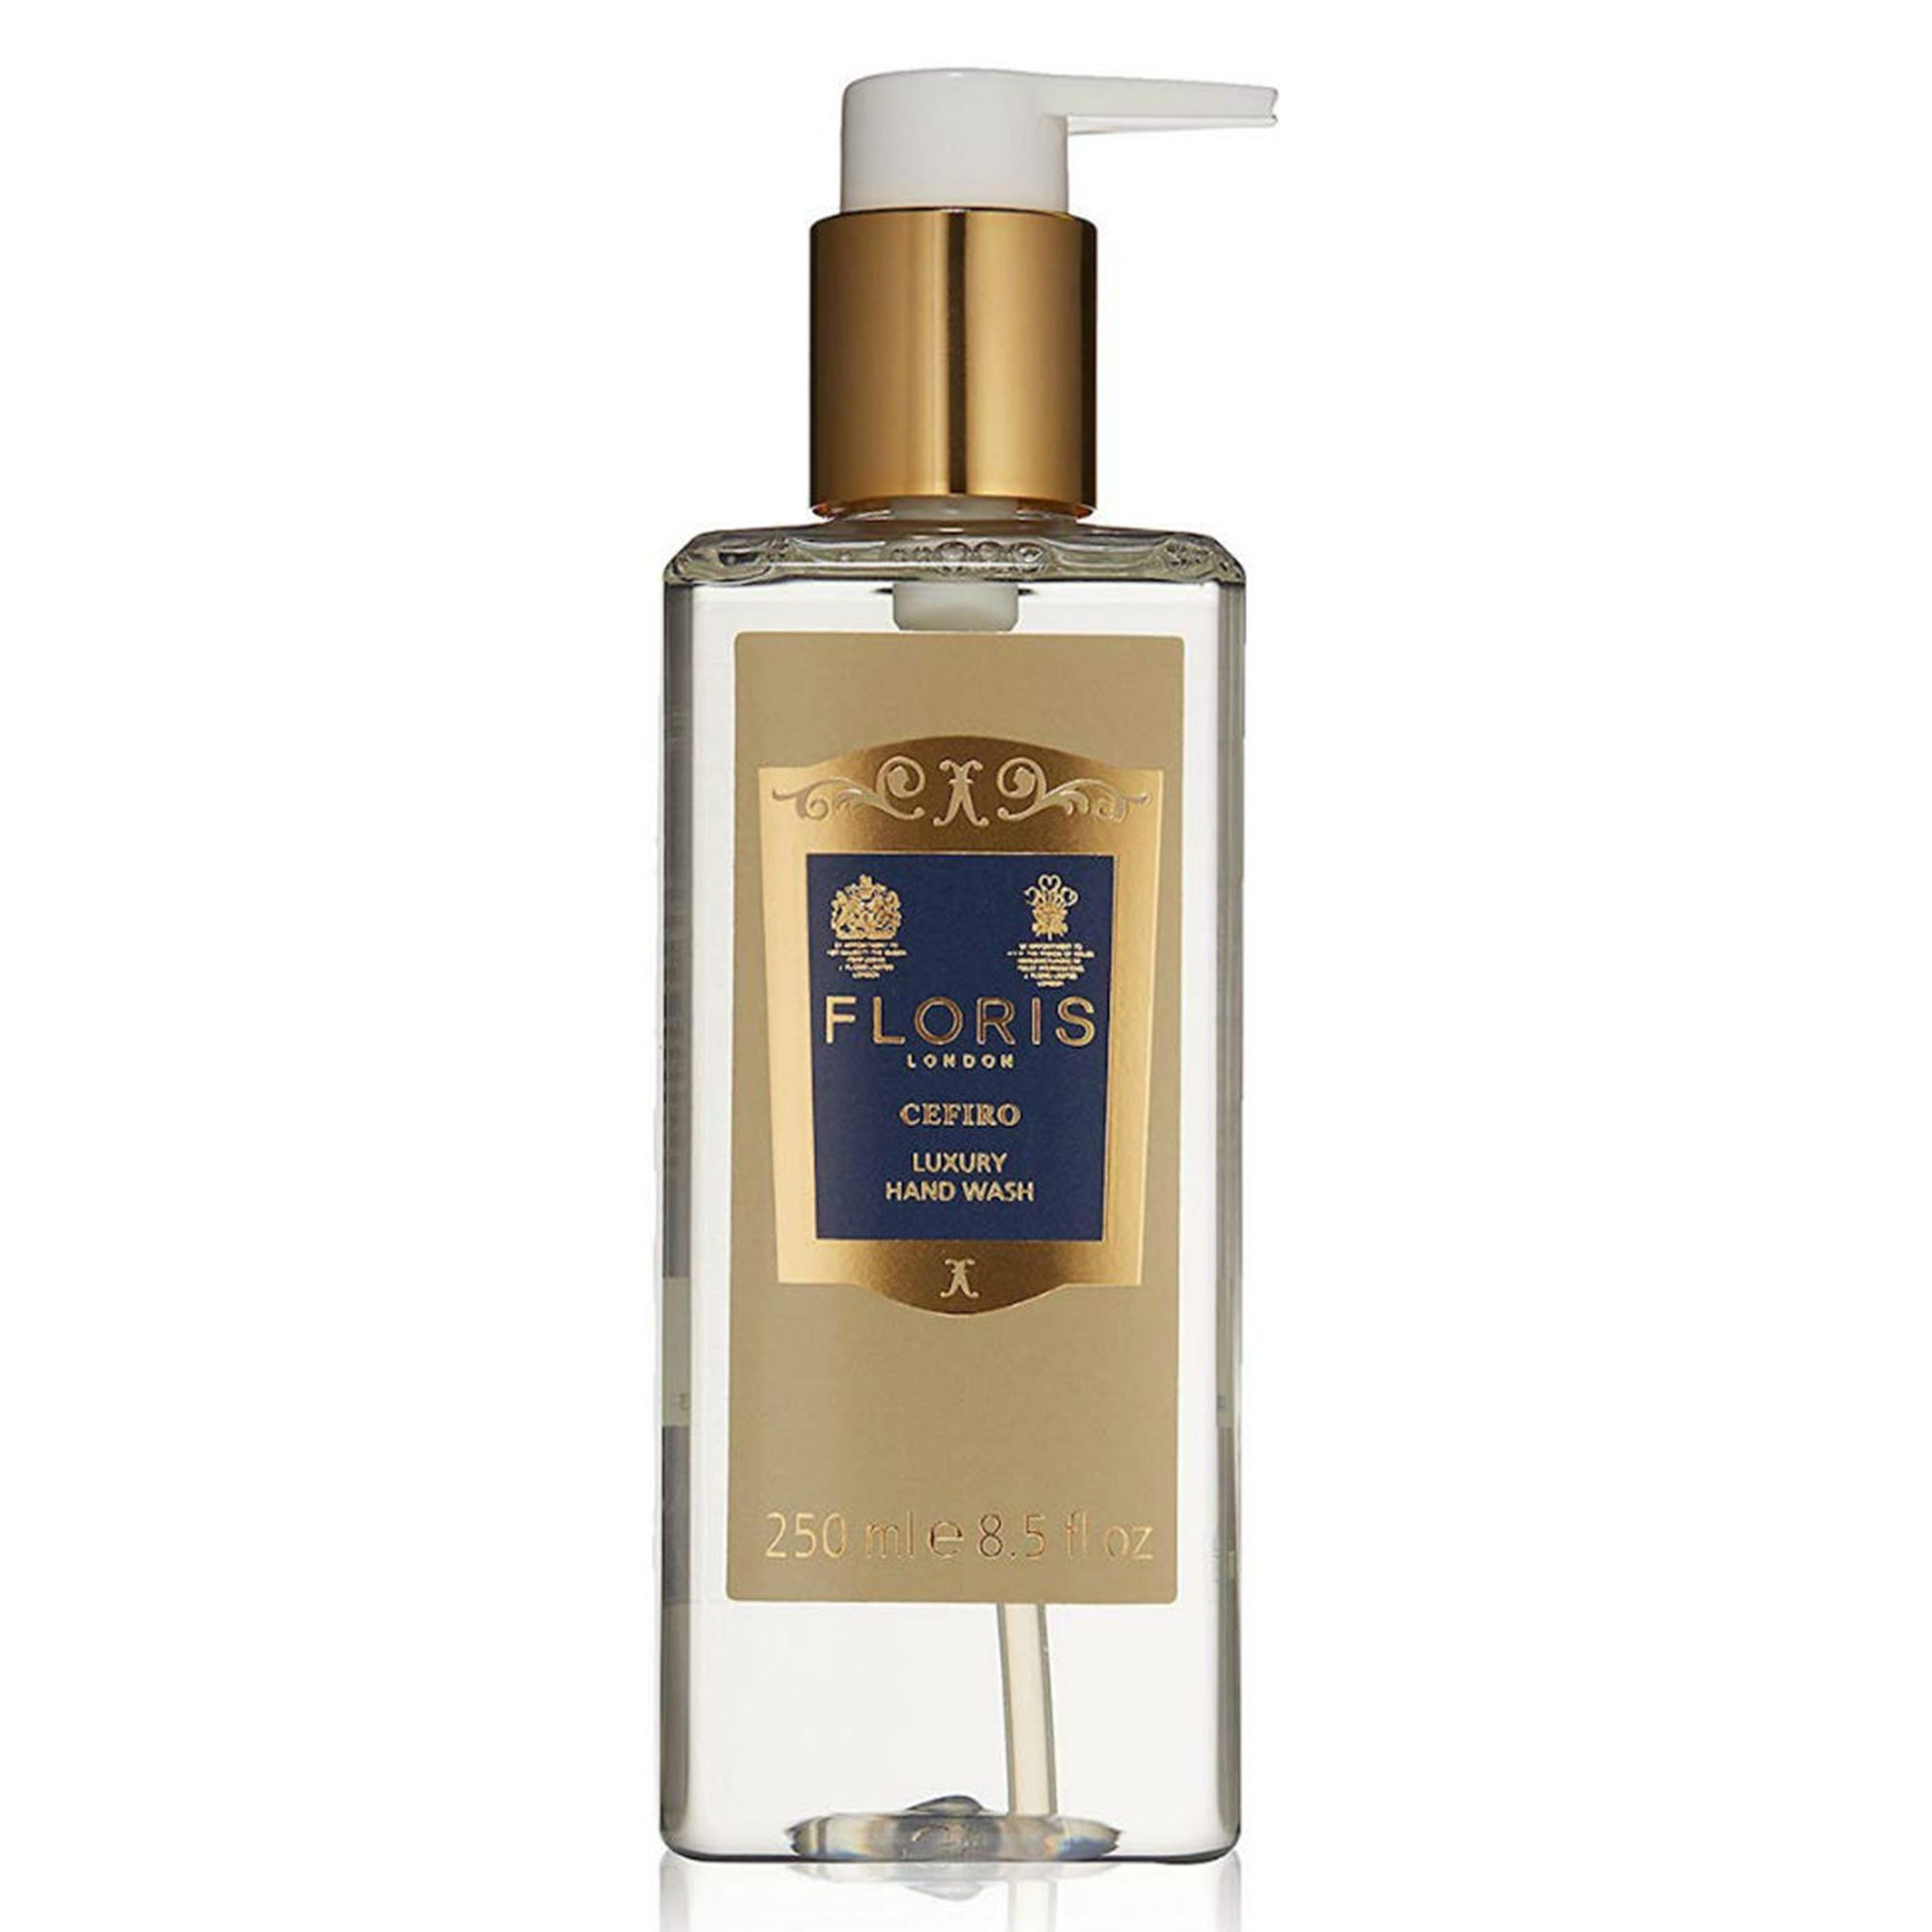 Floris London Cefiro Luxury Hand Wash